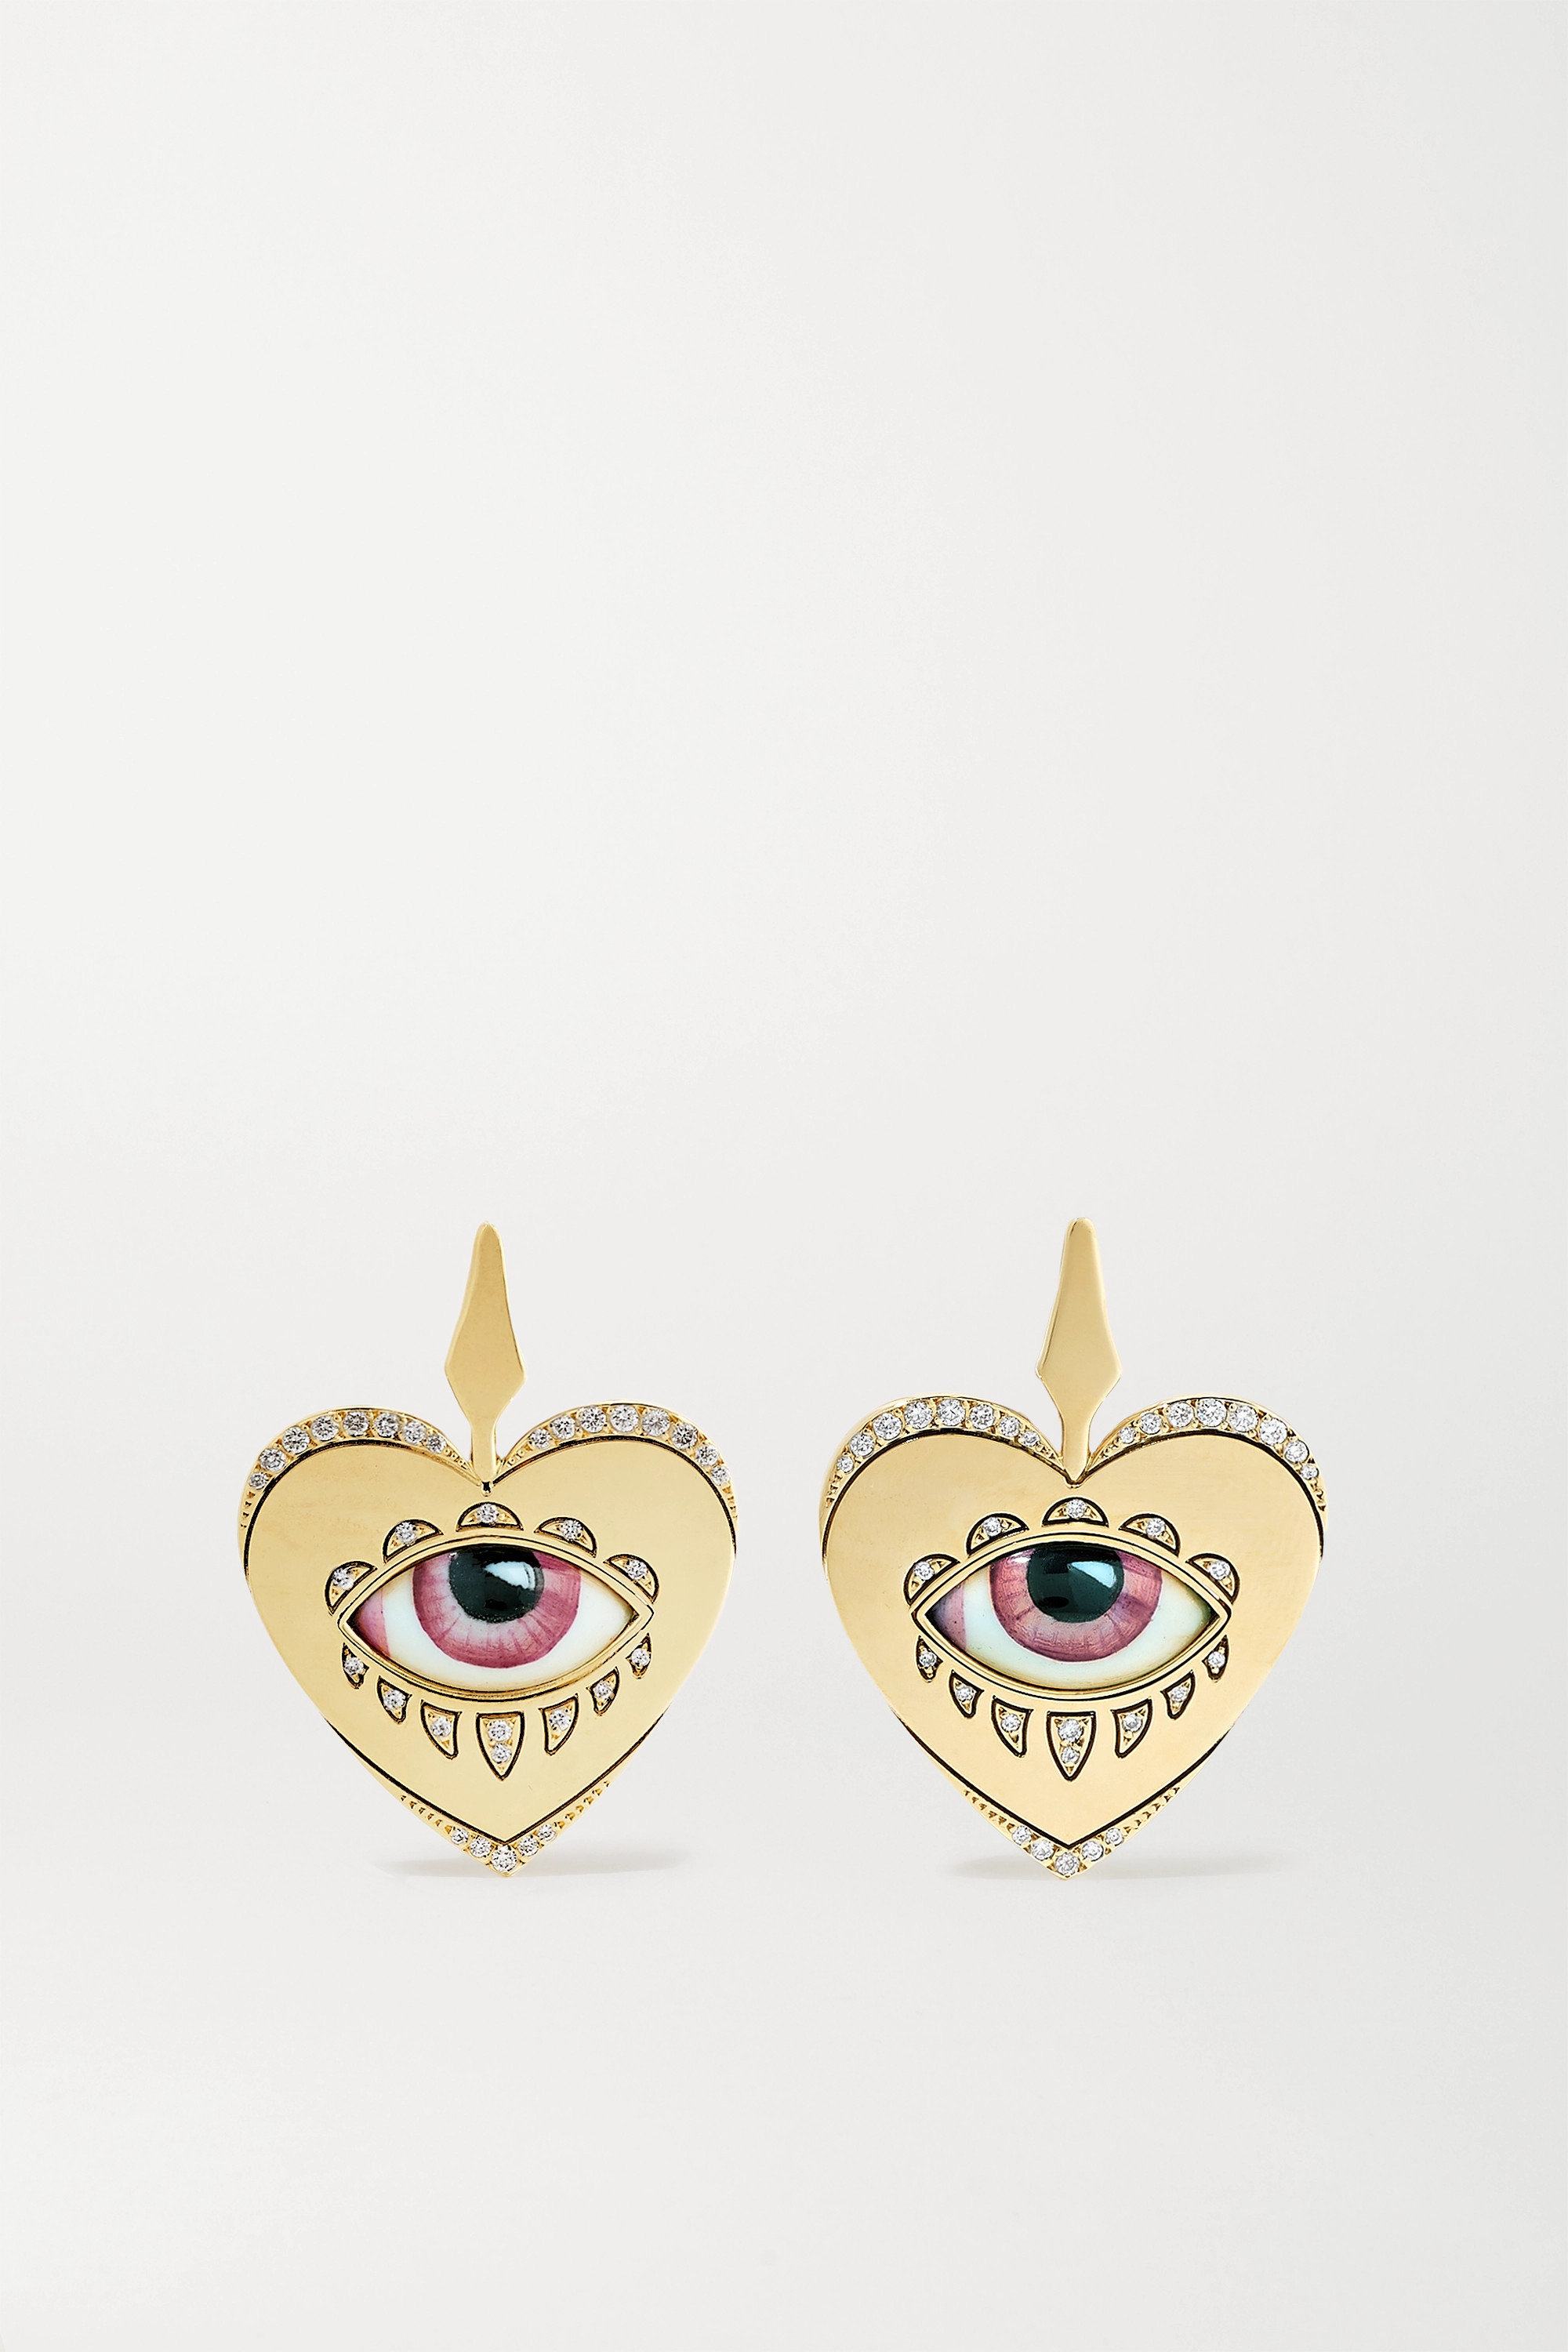 Lito + Racil 14-karat gold, enamel and diamond earrings